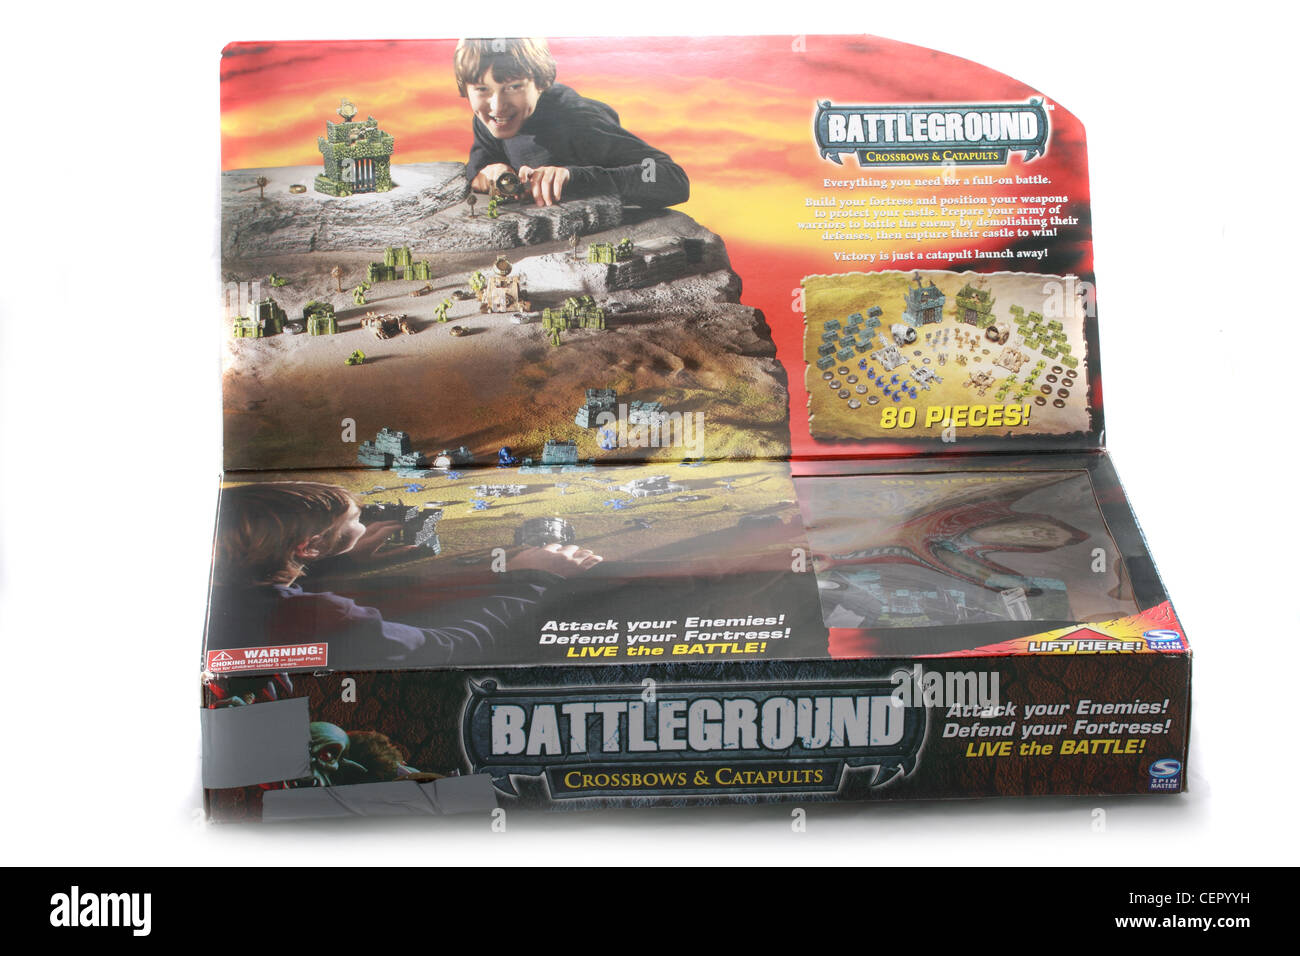 battleground a favourite fighting game between two bands of soldiers, with catapults, ballistas, and canon firing - Stock Image